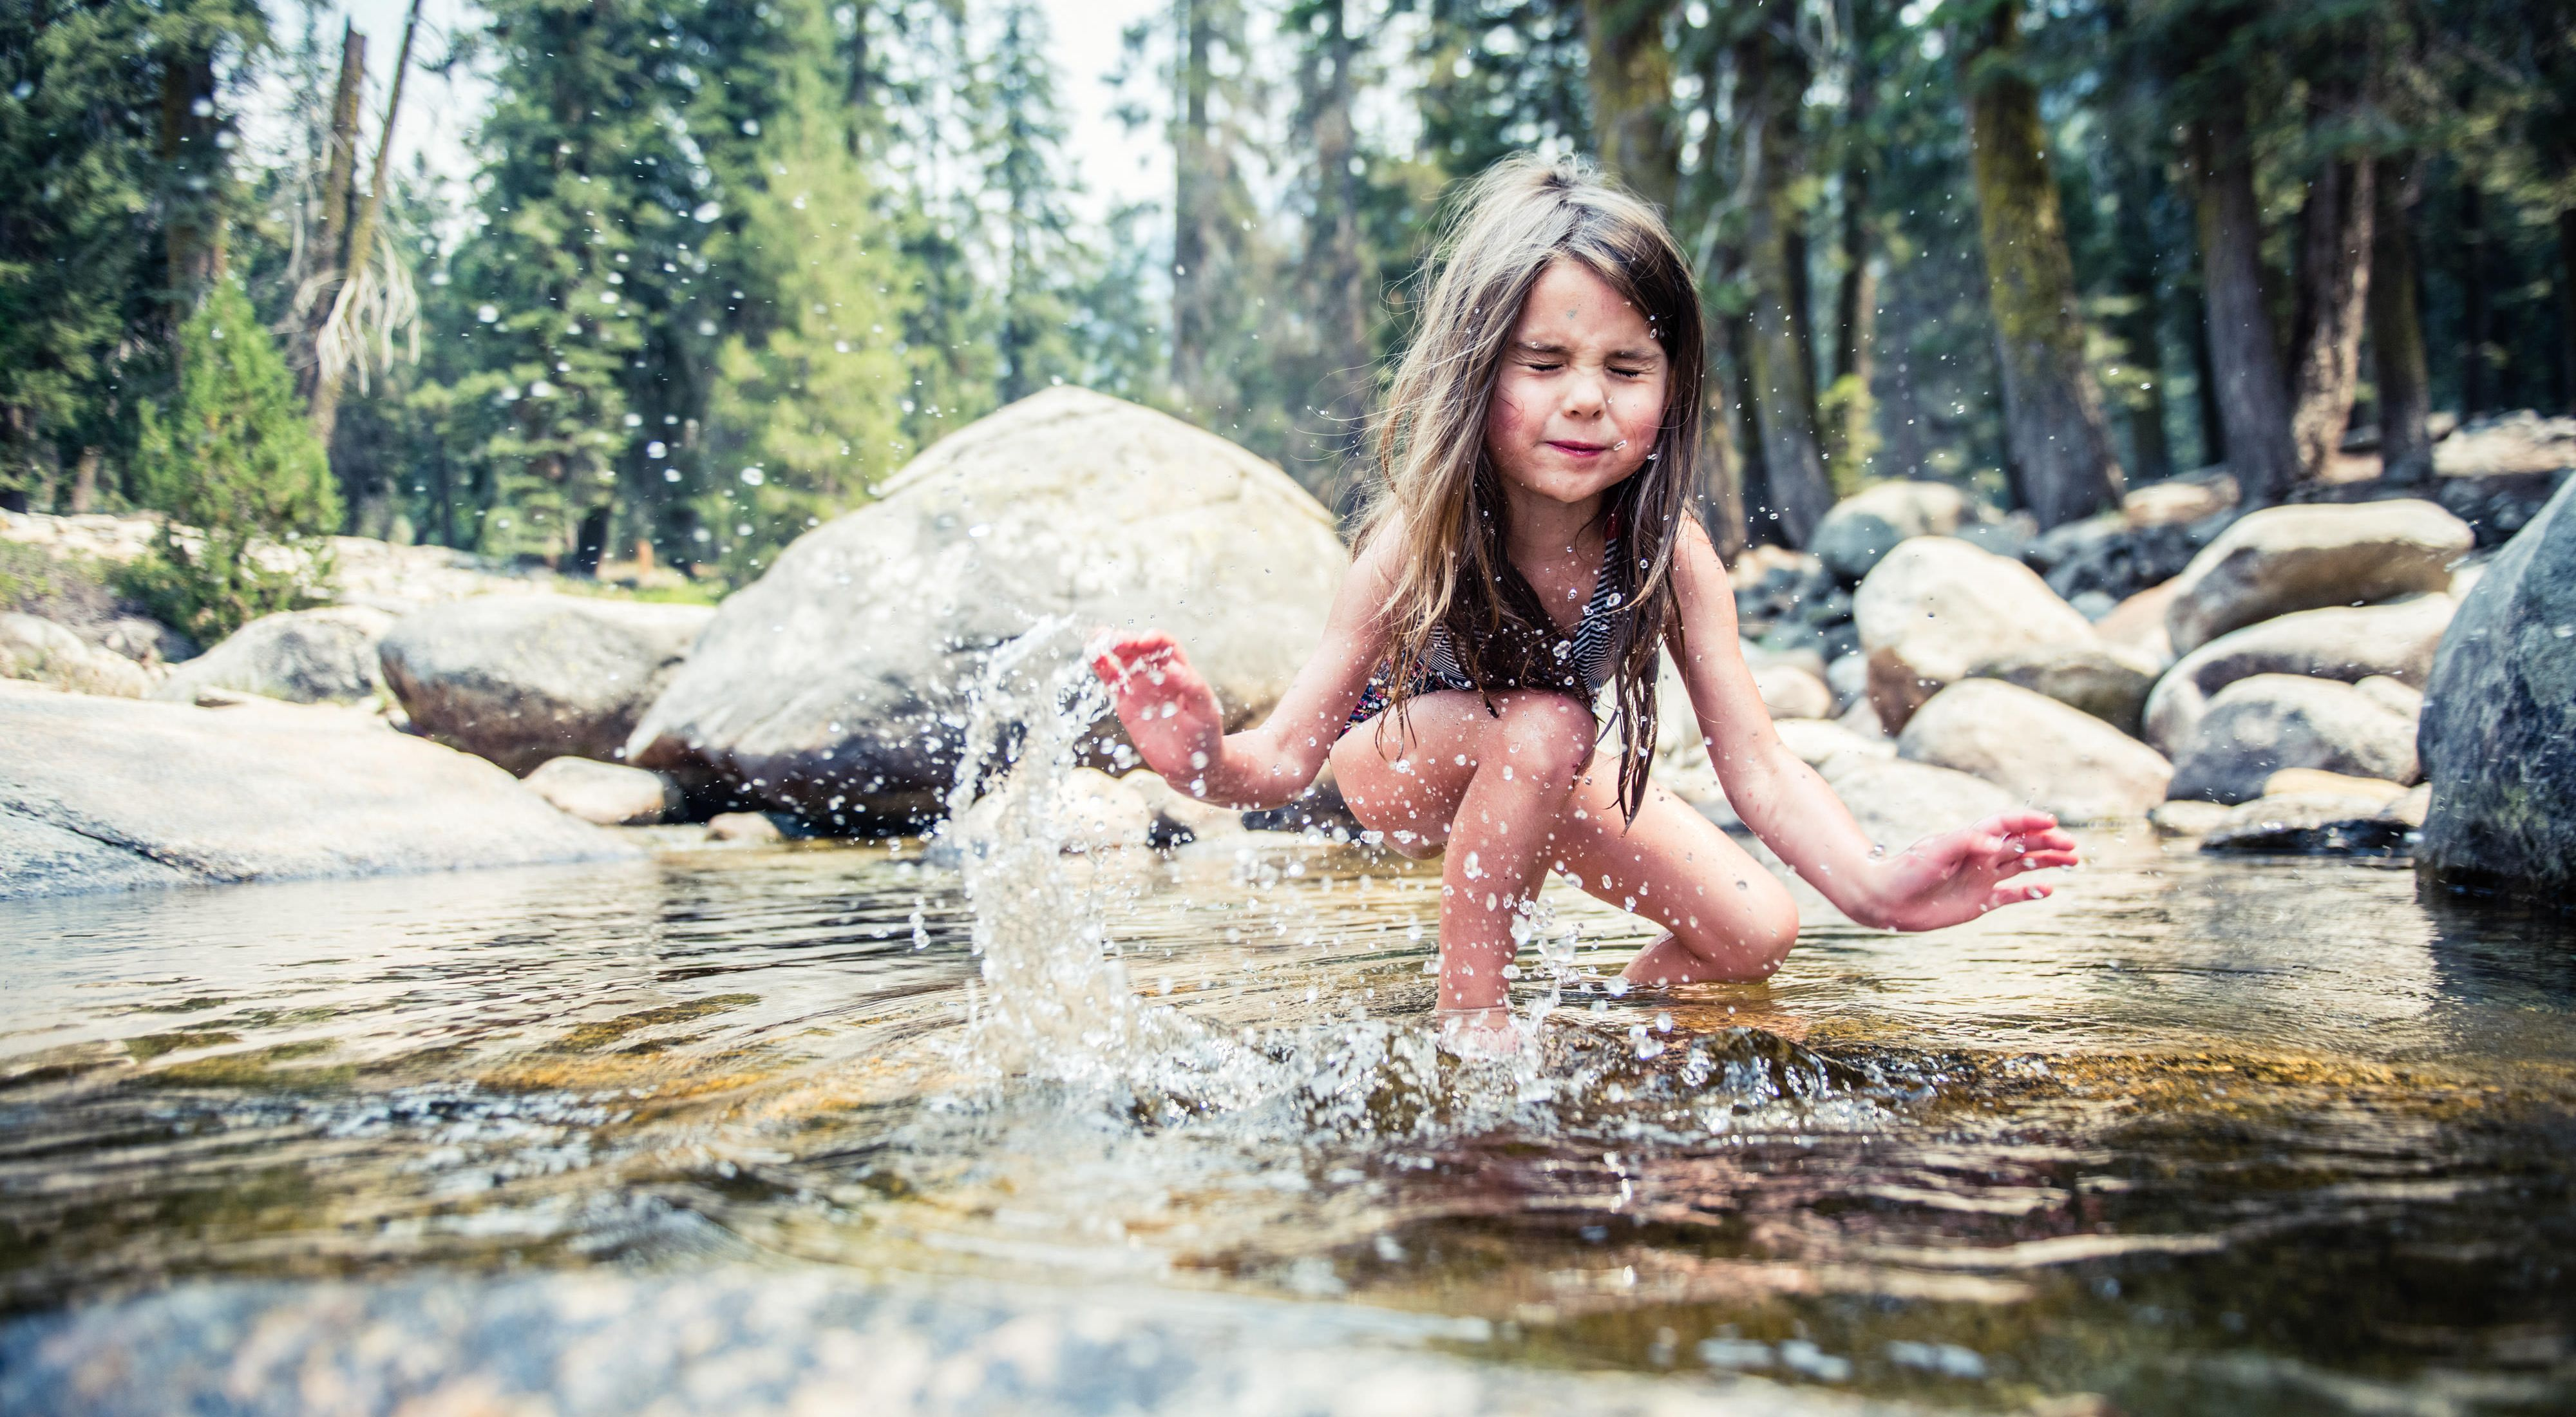 A girl splashes water in front of rocks.